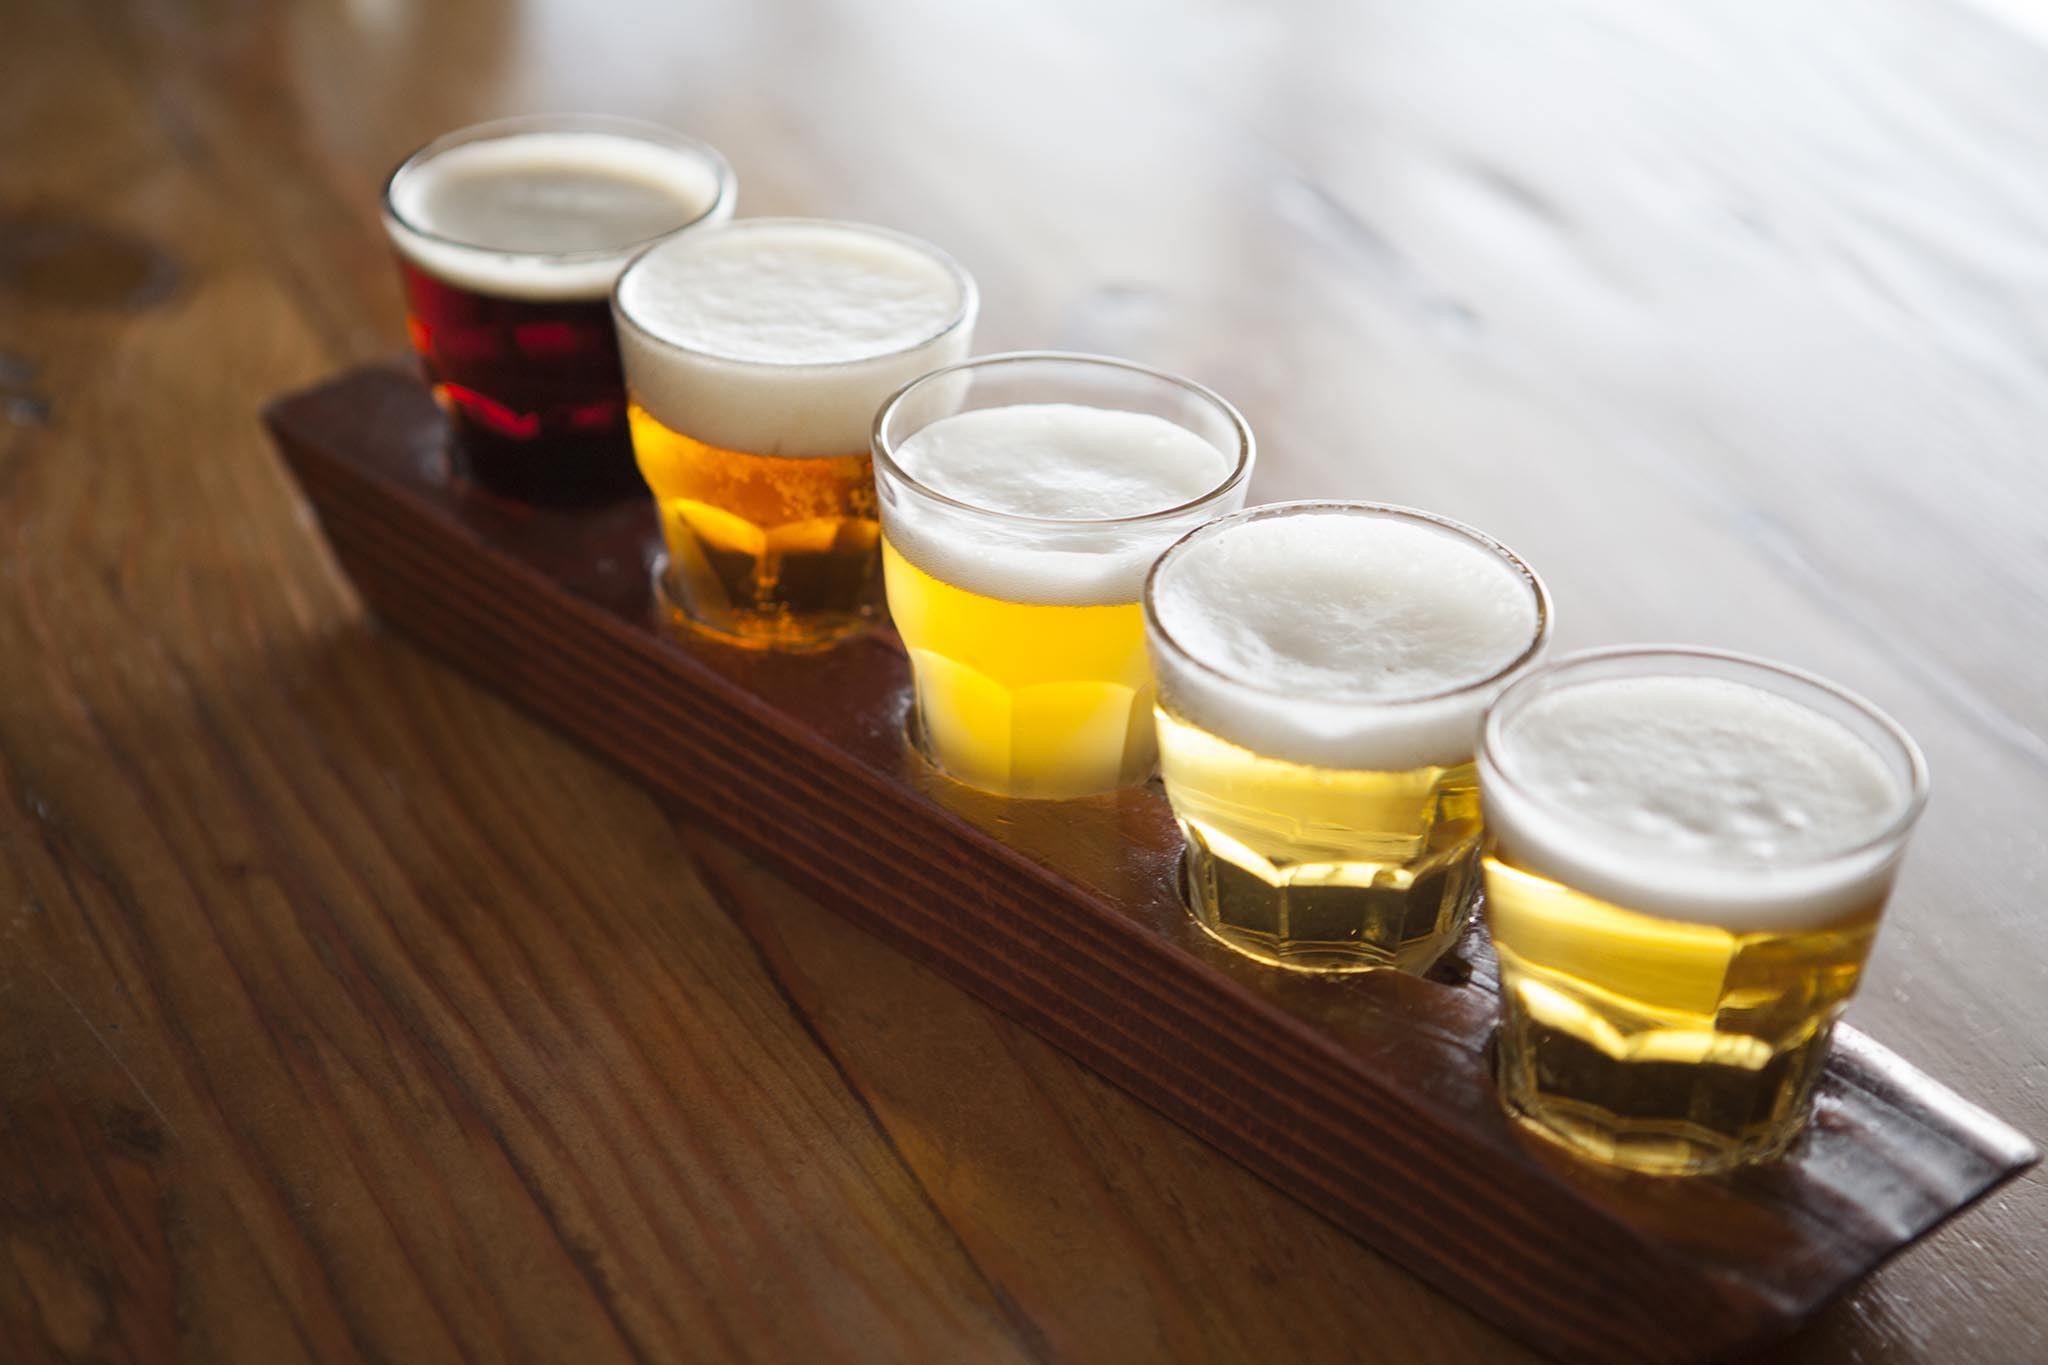 Best beer bars in L.A.